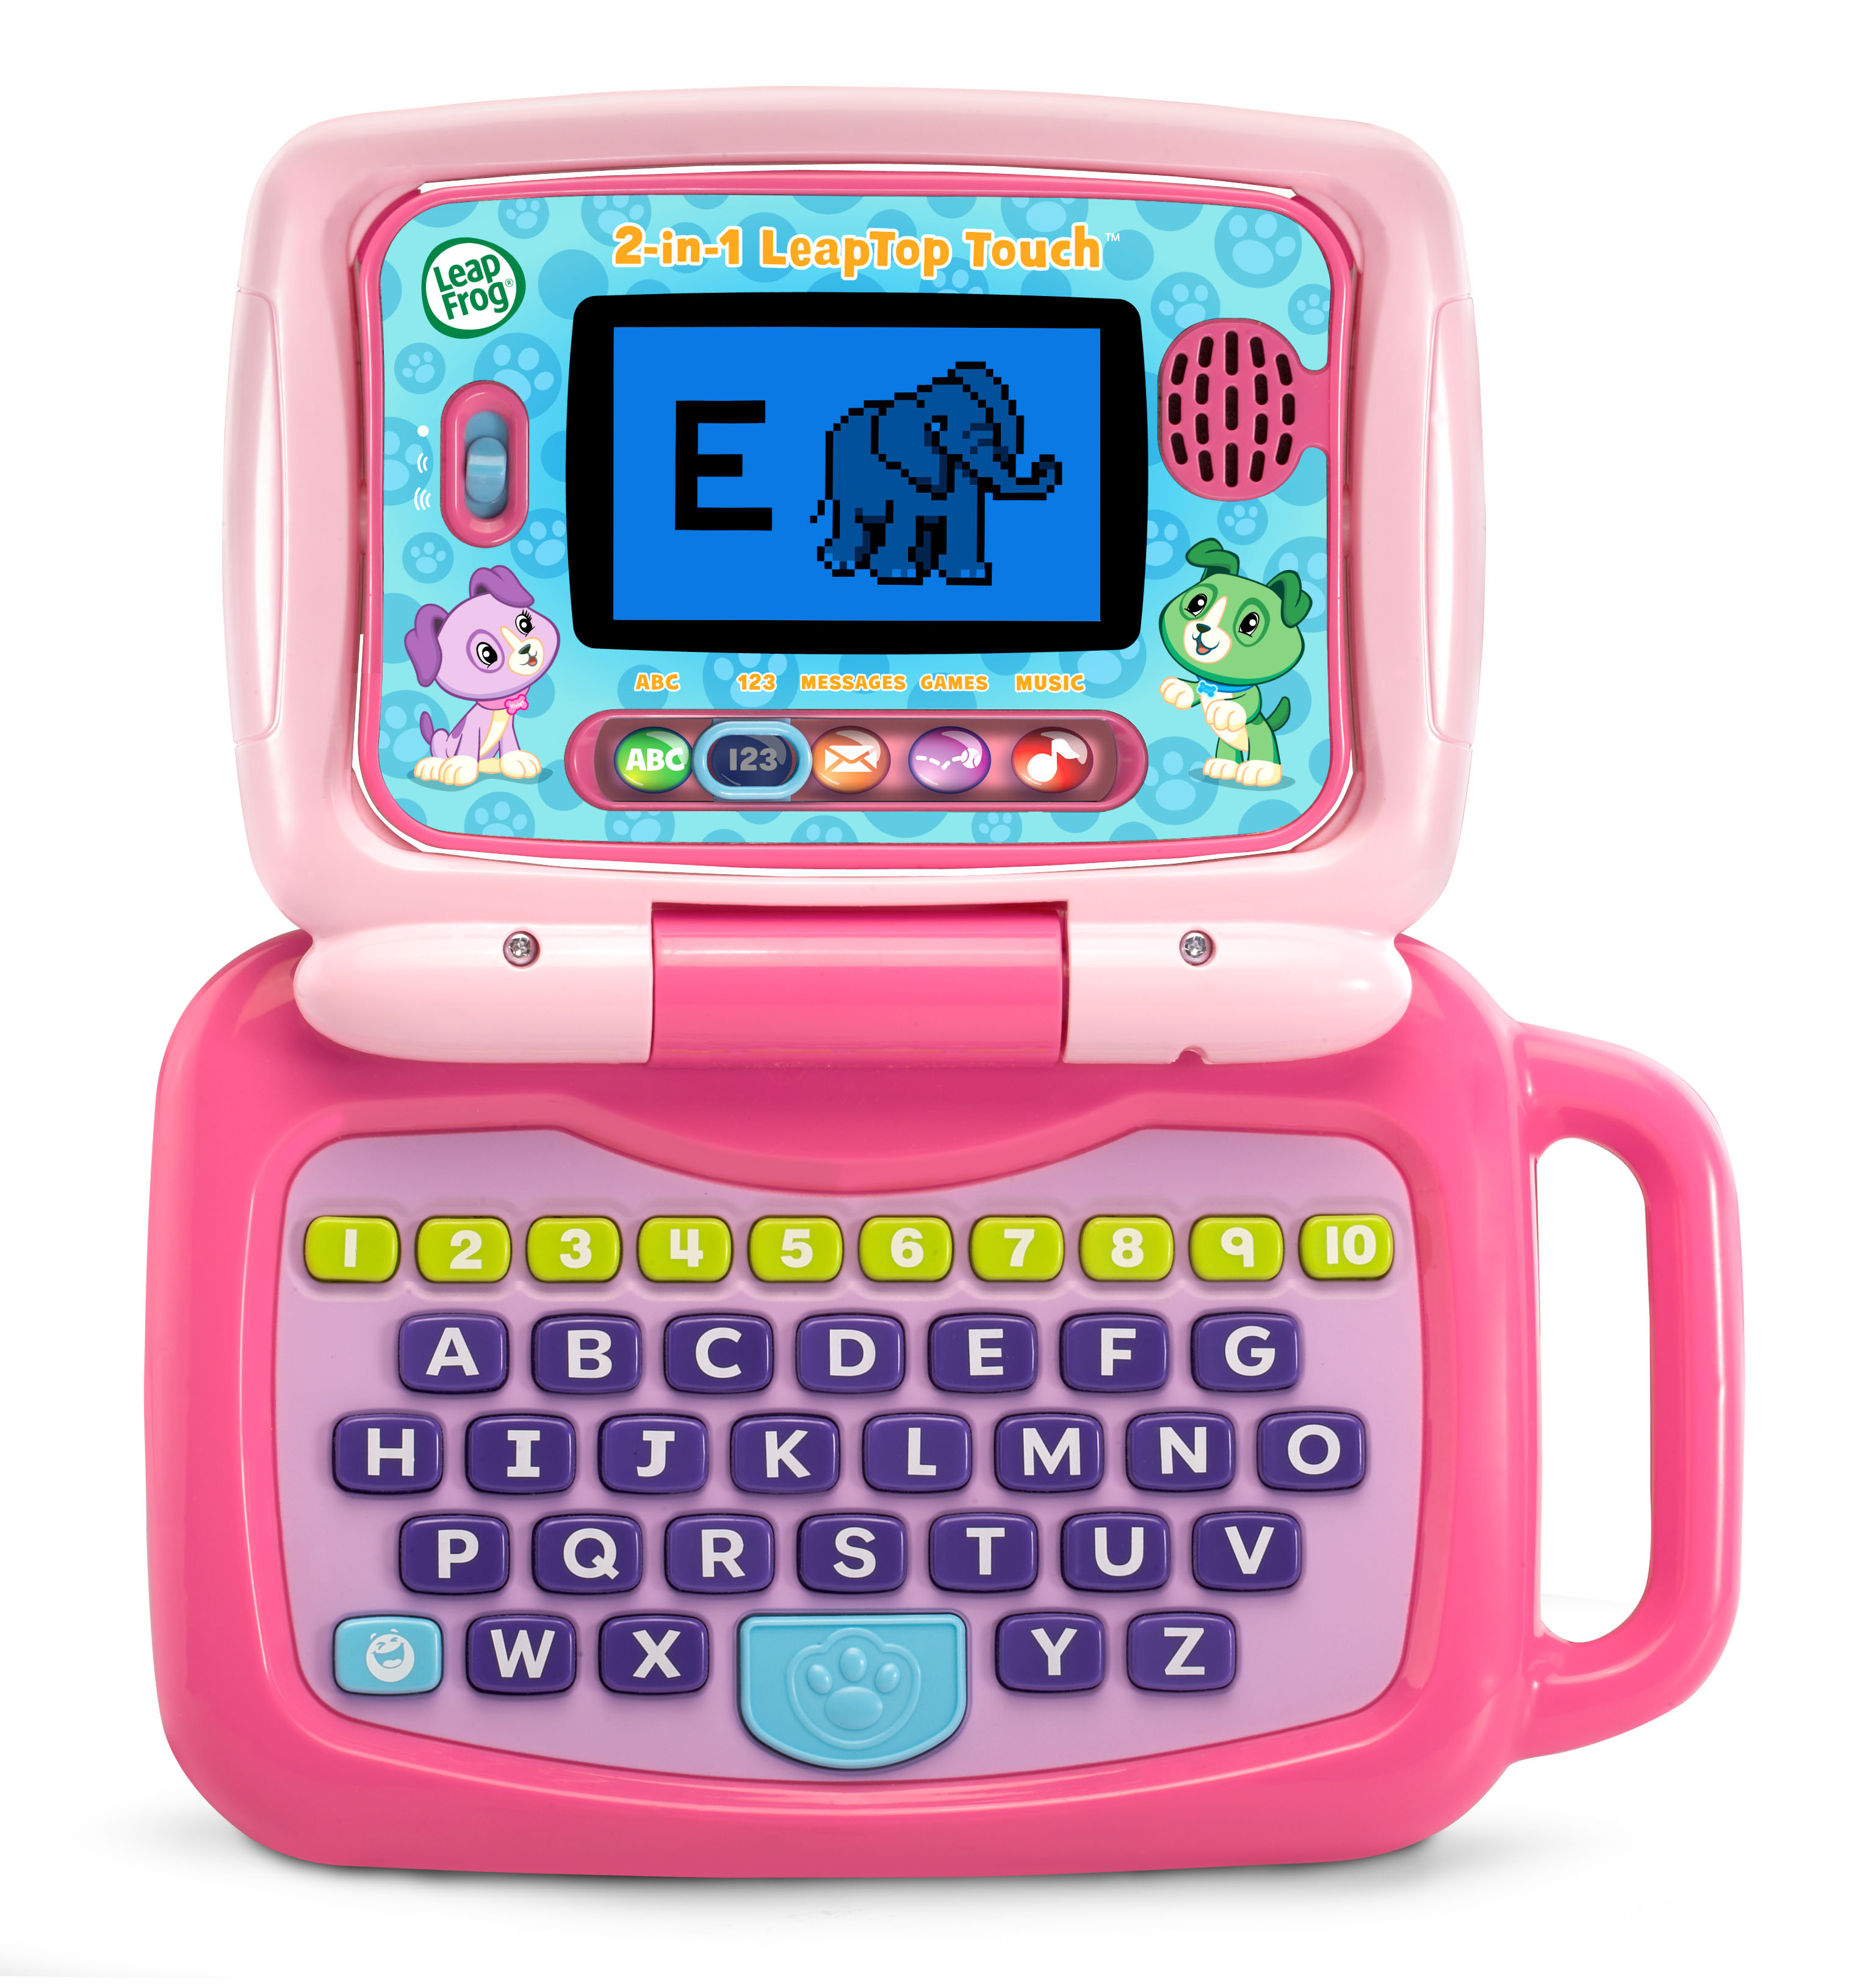 2-in-1 LeapTop Touch - Pink